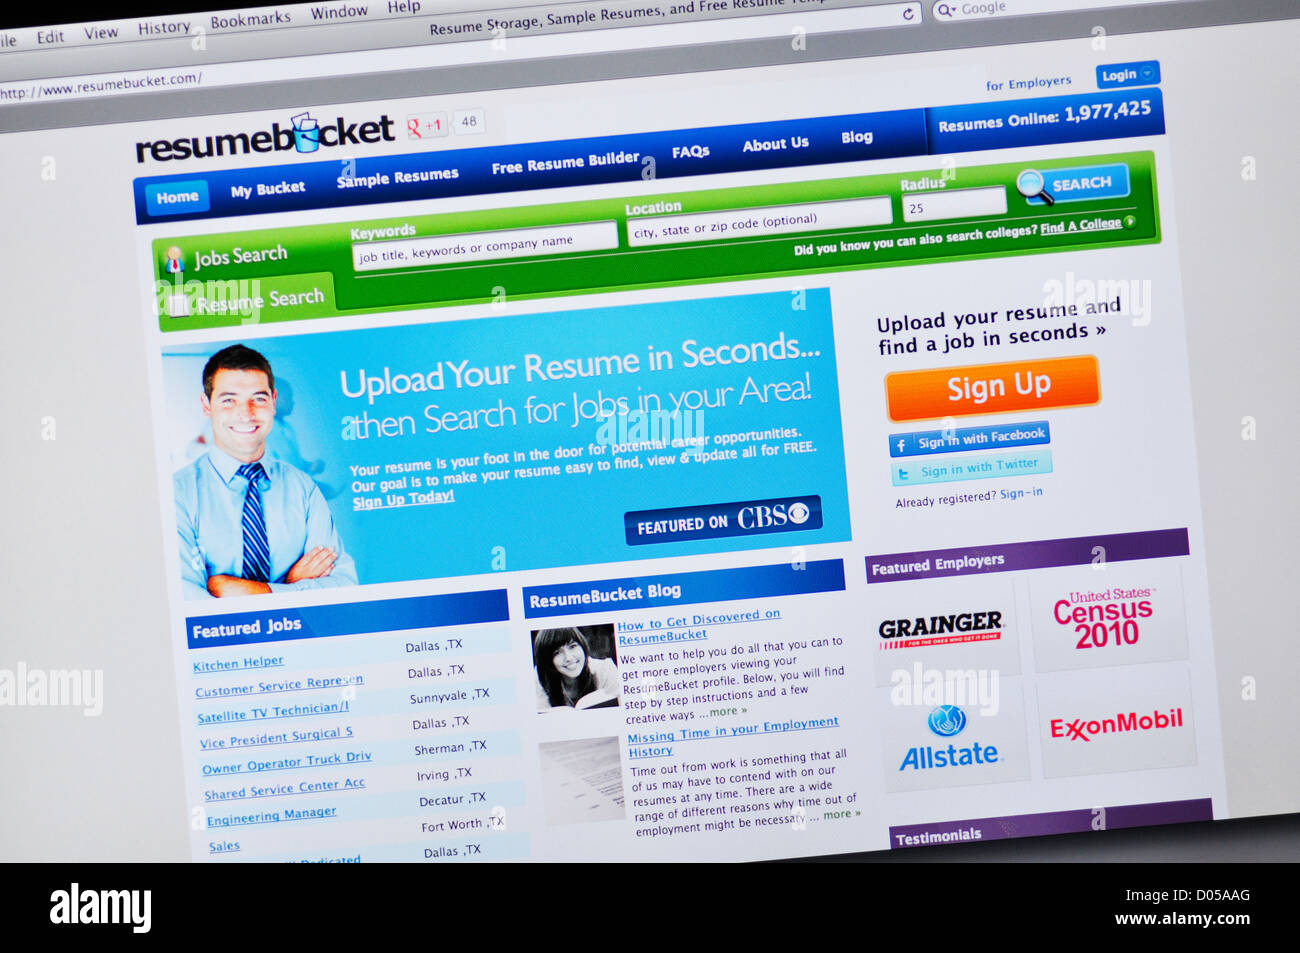 Resume bucket website online resume builder stock photo for Free resume building websites